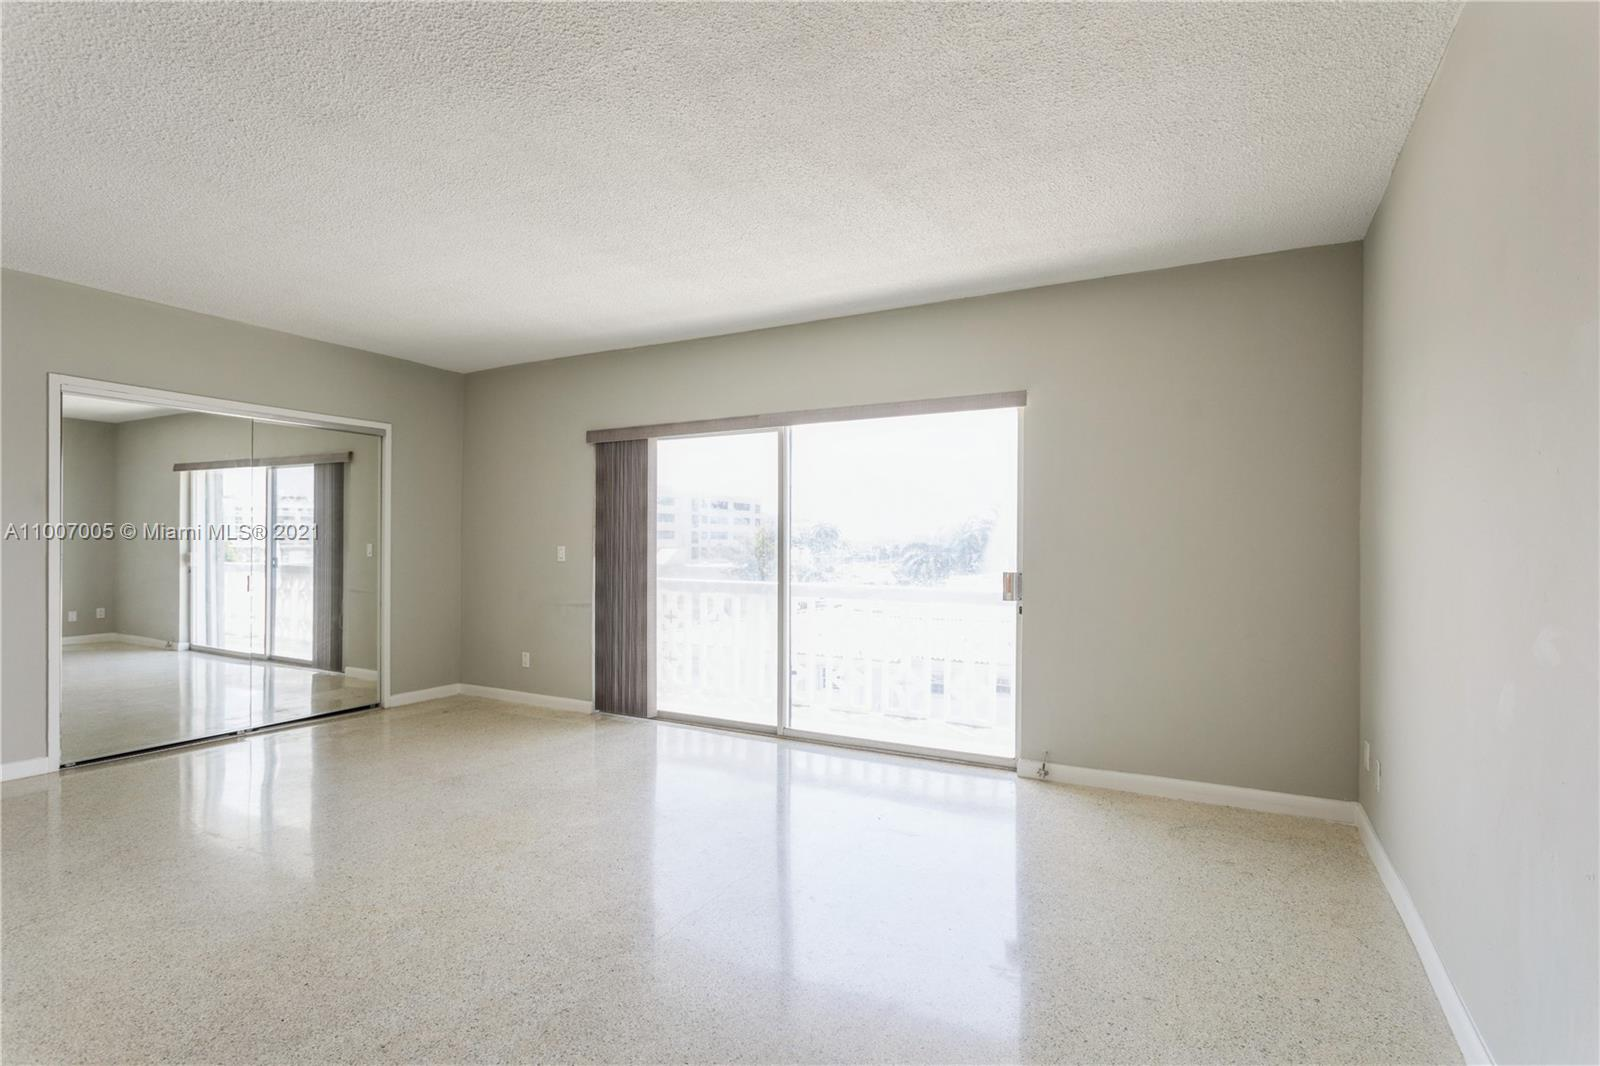 AMAZING LOCATION! ENJOY A CALM & SERENE SETTING IN THIS TASTFULLY UPDATED & SPACIOUS 1/1/1 IN BAY HARBOR'S SUMMIT CONDO. BEAUTIFUL SHADES OF NEUTRALS FROM THE CONTEMPORARY KITCHEN CABINETS TO THE GORGEOUS TERRAZZO FLOORS THROUGHOUT. KITCHEN WELL EQUIPPED W/ PRISTINE CRISP WHITE APPL, GRANITE TOPS & STAINLESS TILE BACKSPLASH. BATHS UPDATED W/ BEAUTIFUL CONTEMPORARY FIXTURES & TILE. PLENTY OF CLOSET SPACE INCL 2 IN MASTER. BEAUTIFUL & CHARMING WEST SKLYLINE VIEWS W/ BALCONY ACCESS. UNIT ASSIGNED 1 PARKING SPACE, HURR SHUTTERS & STORAGE. THIS UNIT IS THE PERFECT BACKDROP FOR ANY FURNISHINGS. WONDERFUL PEDESTRIAN NEIGHBORHOOD CLOSE TO SHOPS, RESTAURANTS, HOUSES OF WORSHIP, PARKS, A RATED SCHOOL & BEACH. CONDO BOASTS POOL, UPDATED LOBBY, LAUNDRY, SPACIOUS COMMON AREAS & LOW MAINT. A MUST SEE!